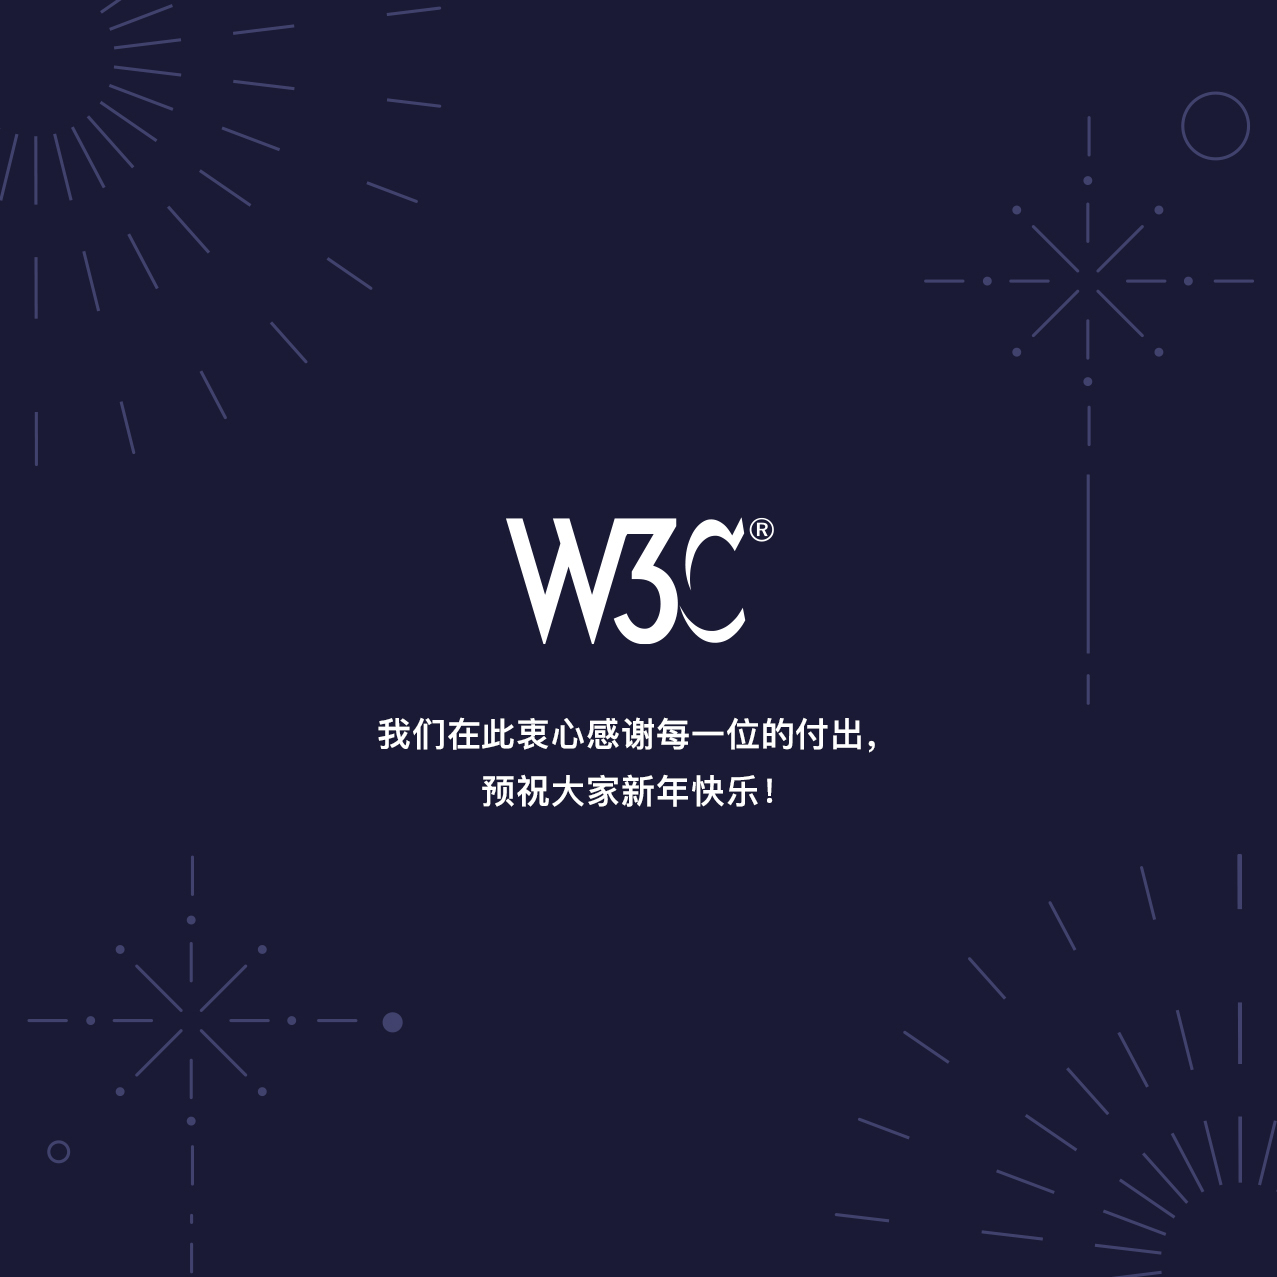 W3C Holiday Card